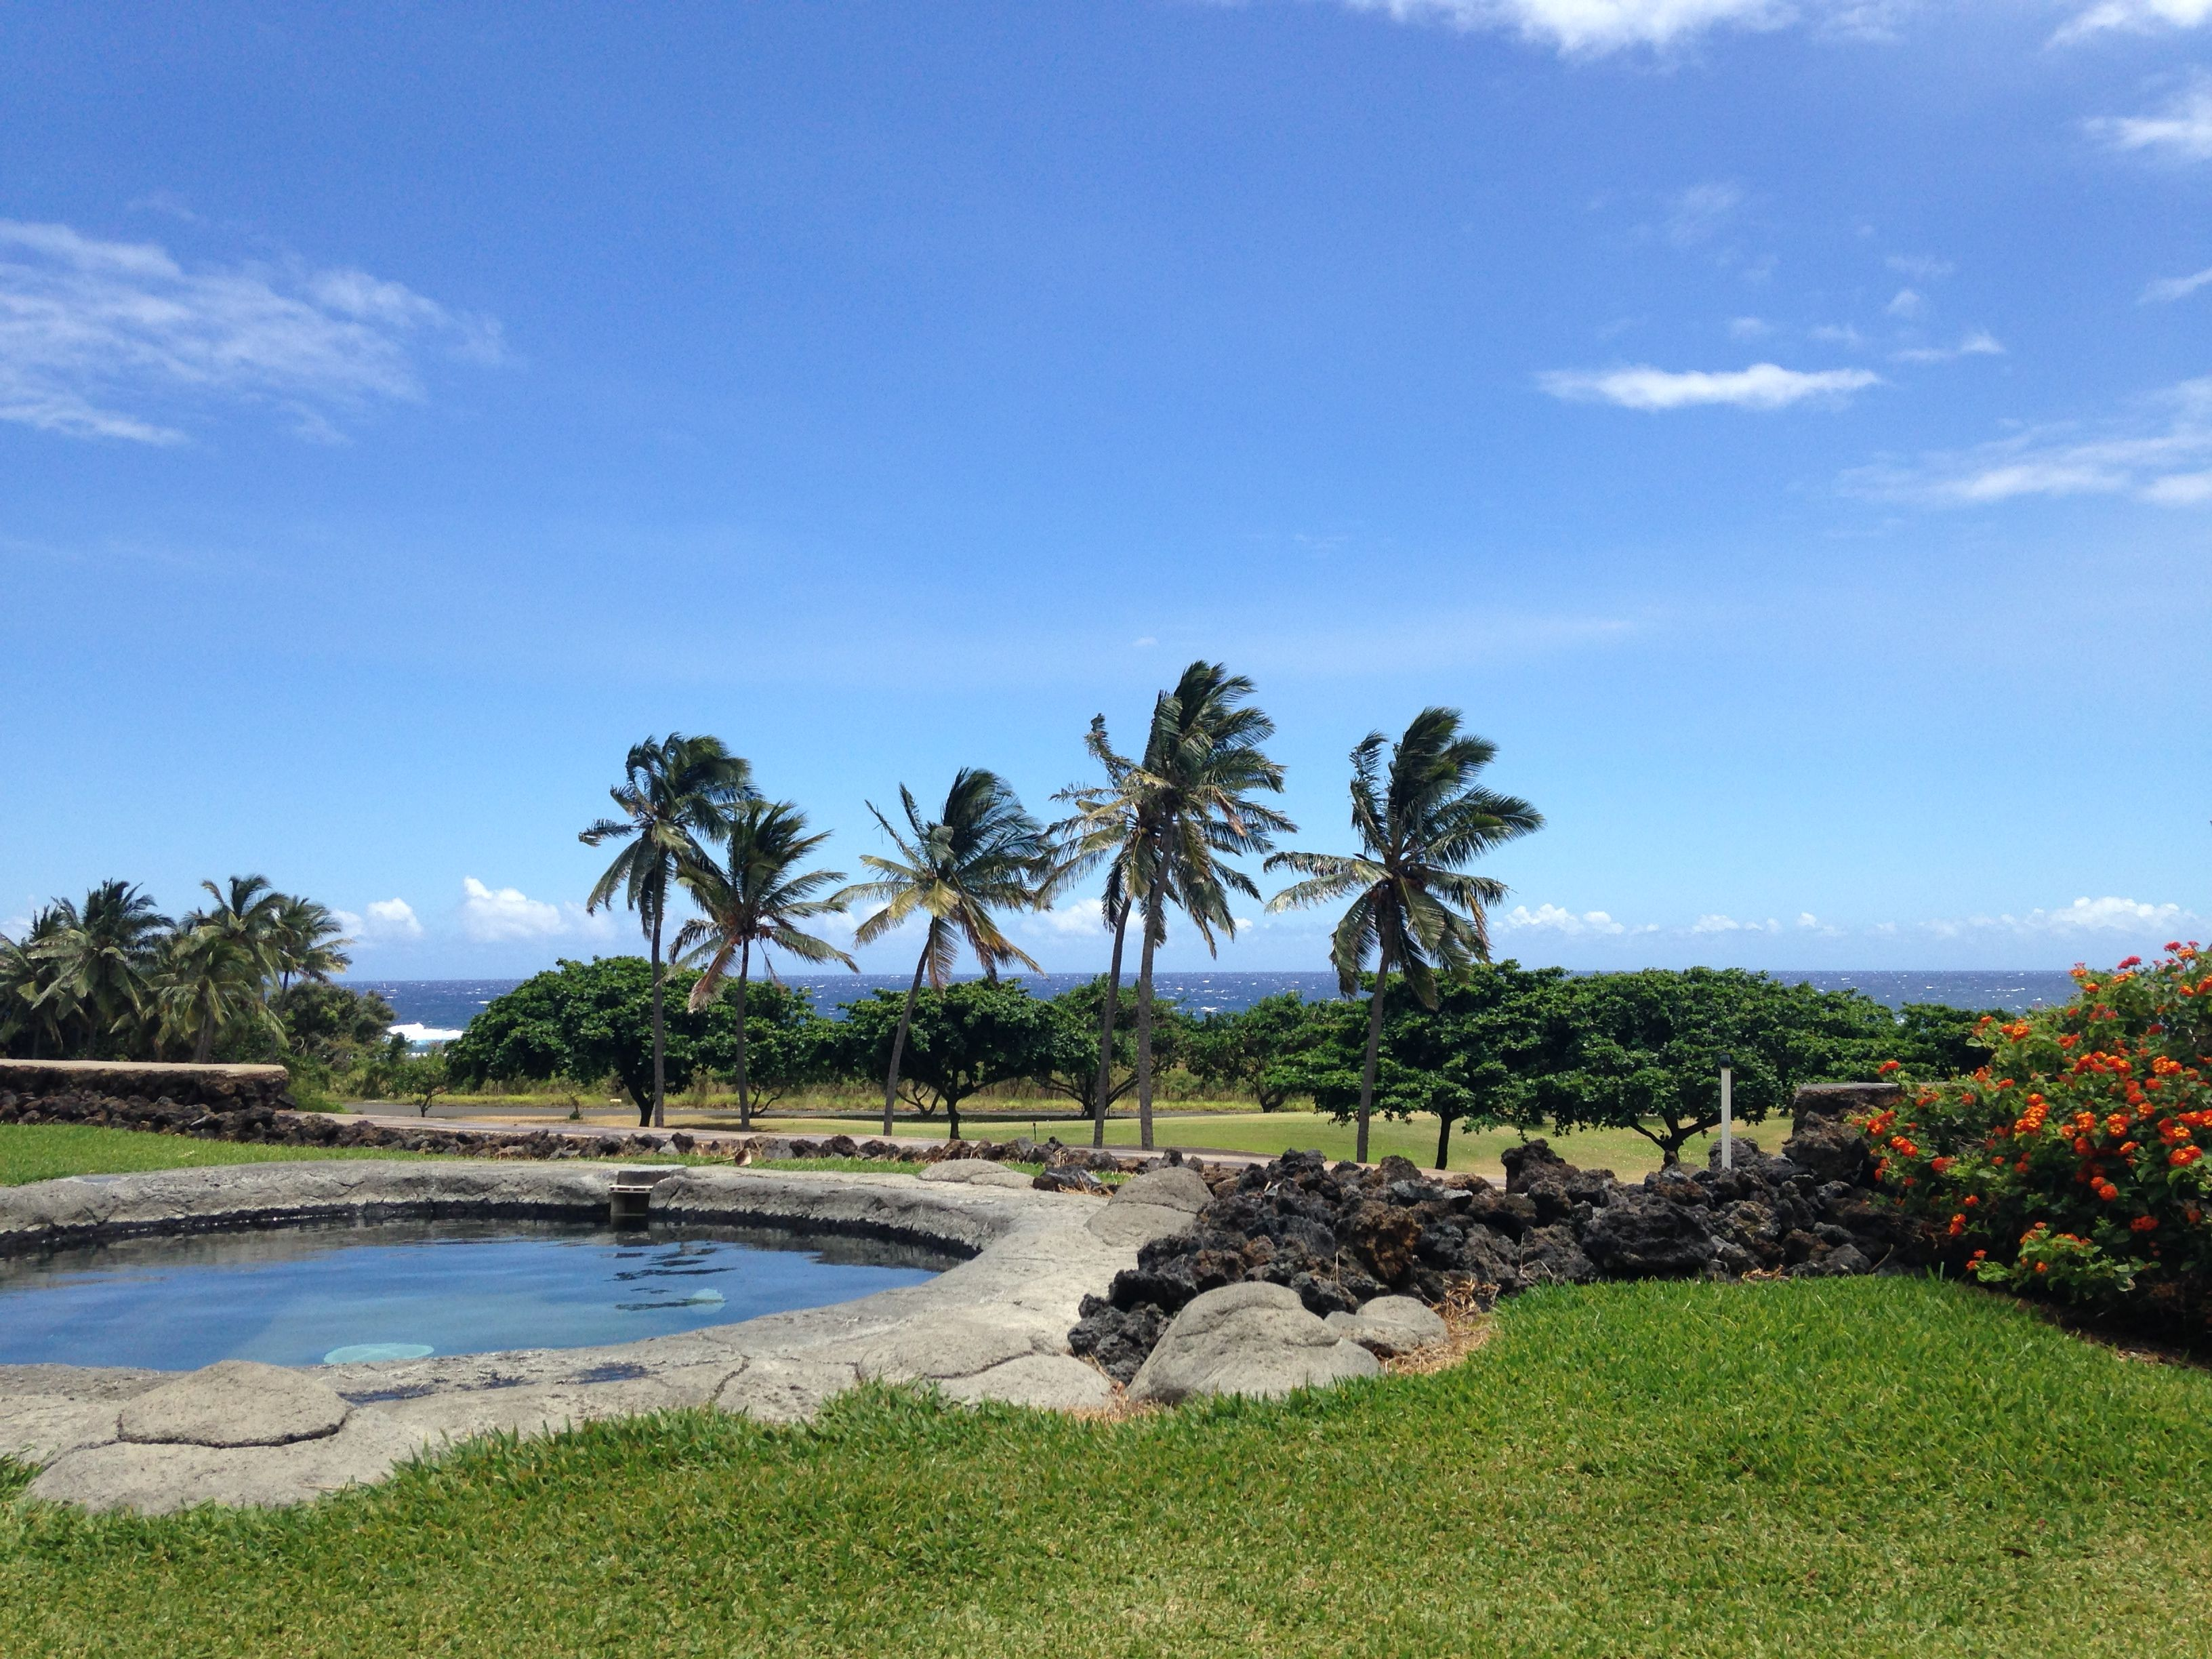 stunning view from sea mountain resort in pahala, hawaii. courtesy